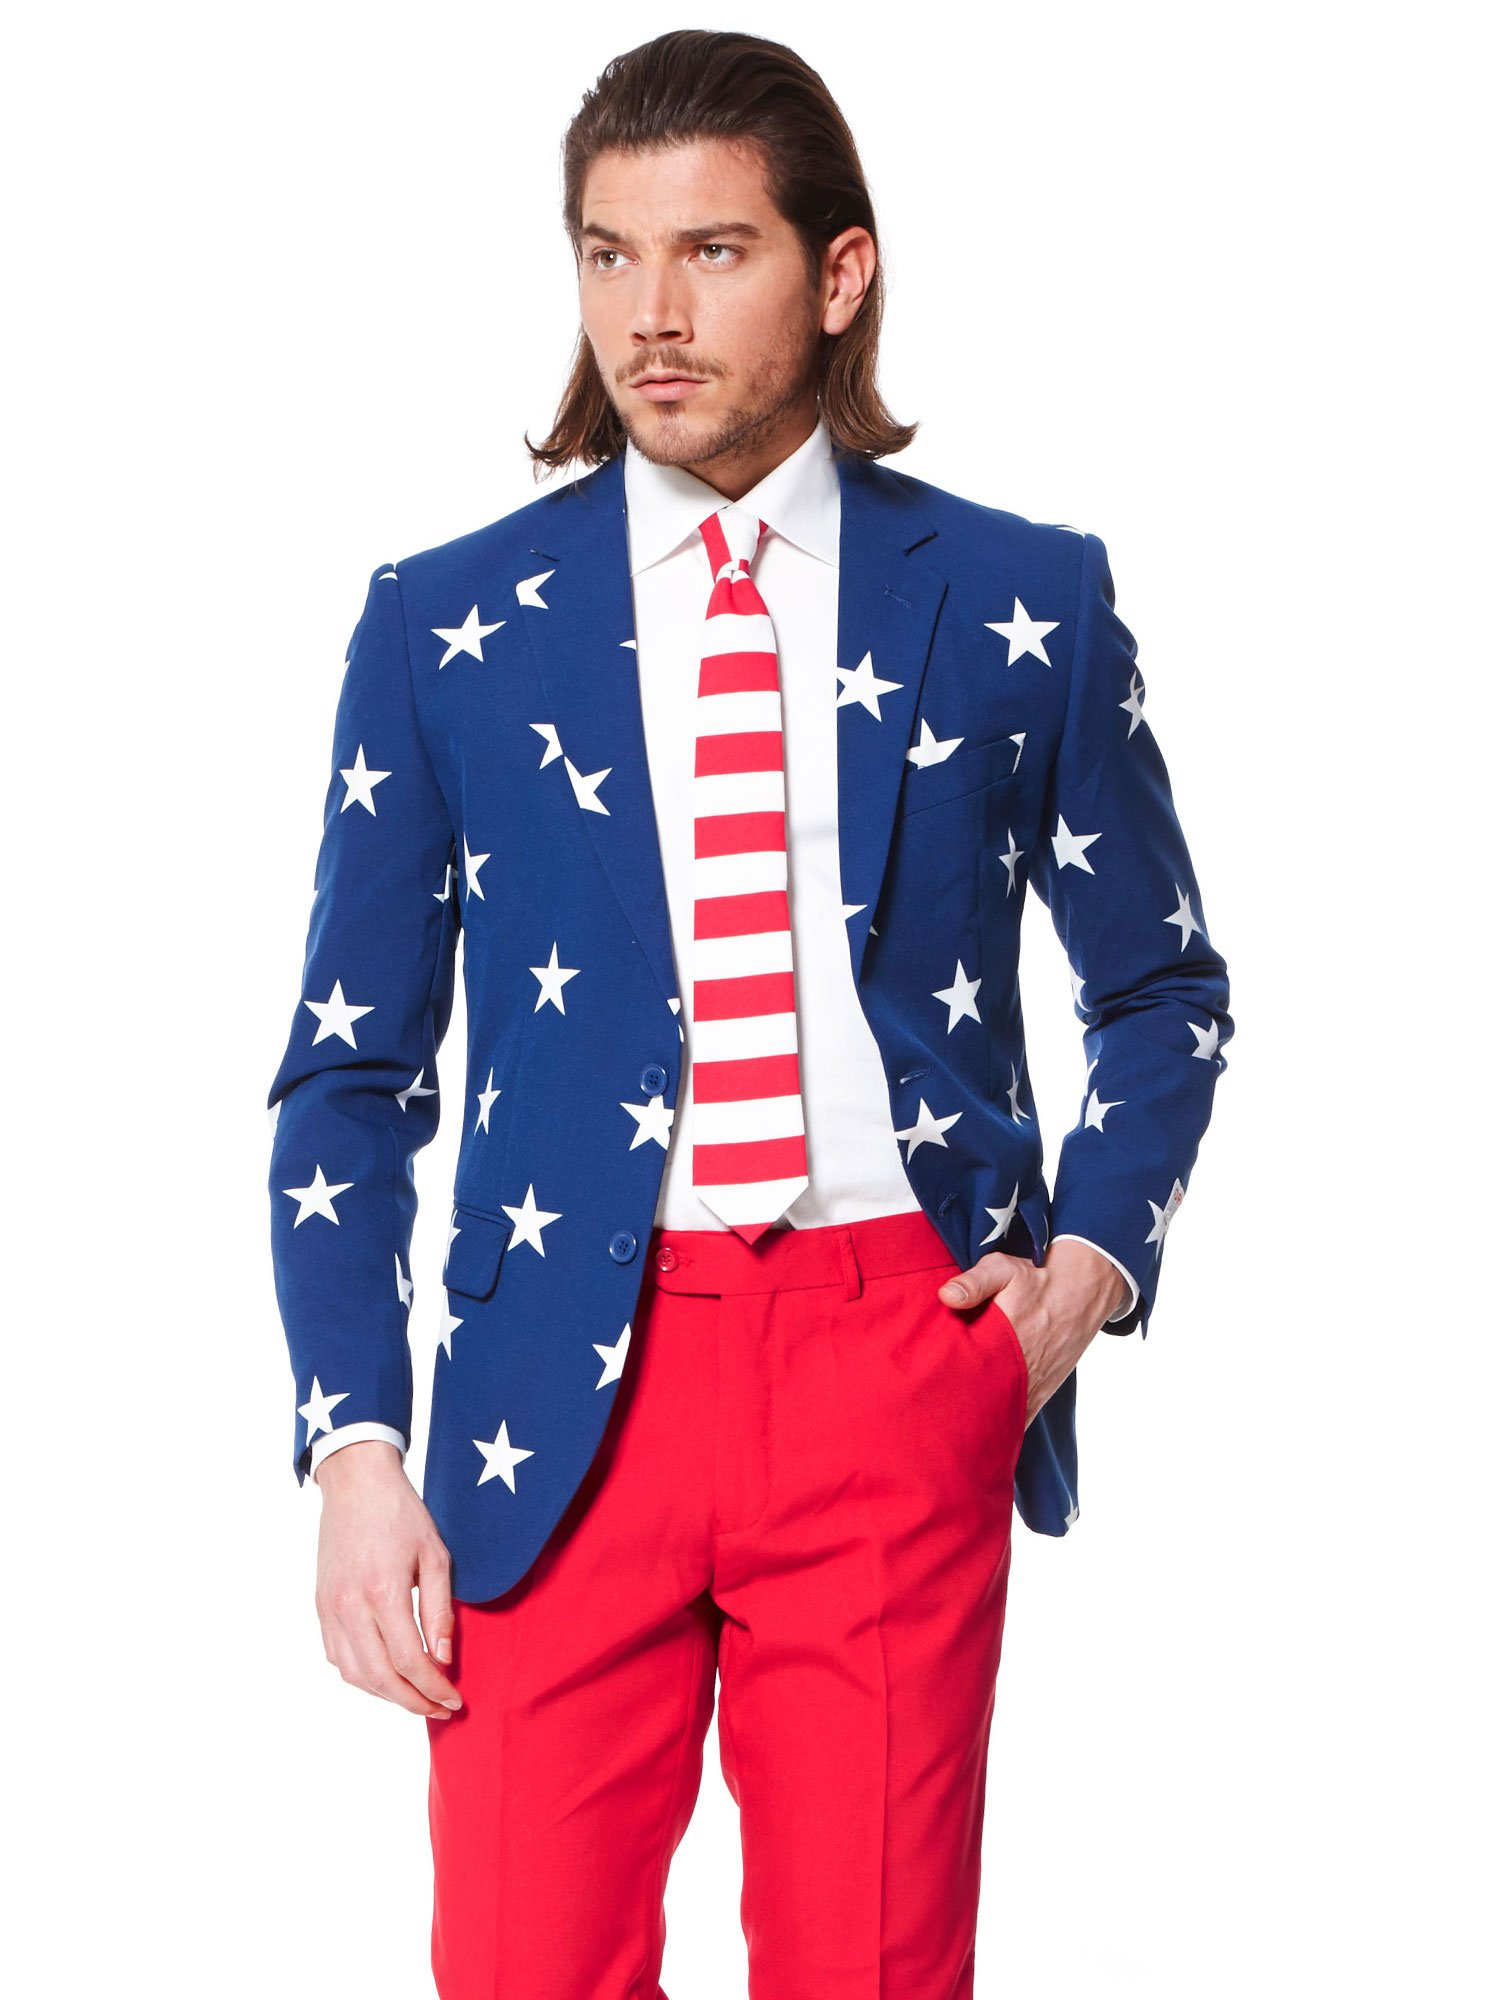 Opposuits Fancy Colored Suit For Men Now With Free Prom King and Prom Queen Sash,Stars and Stripes,US40